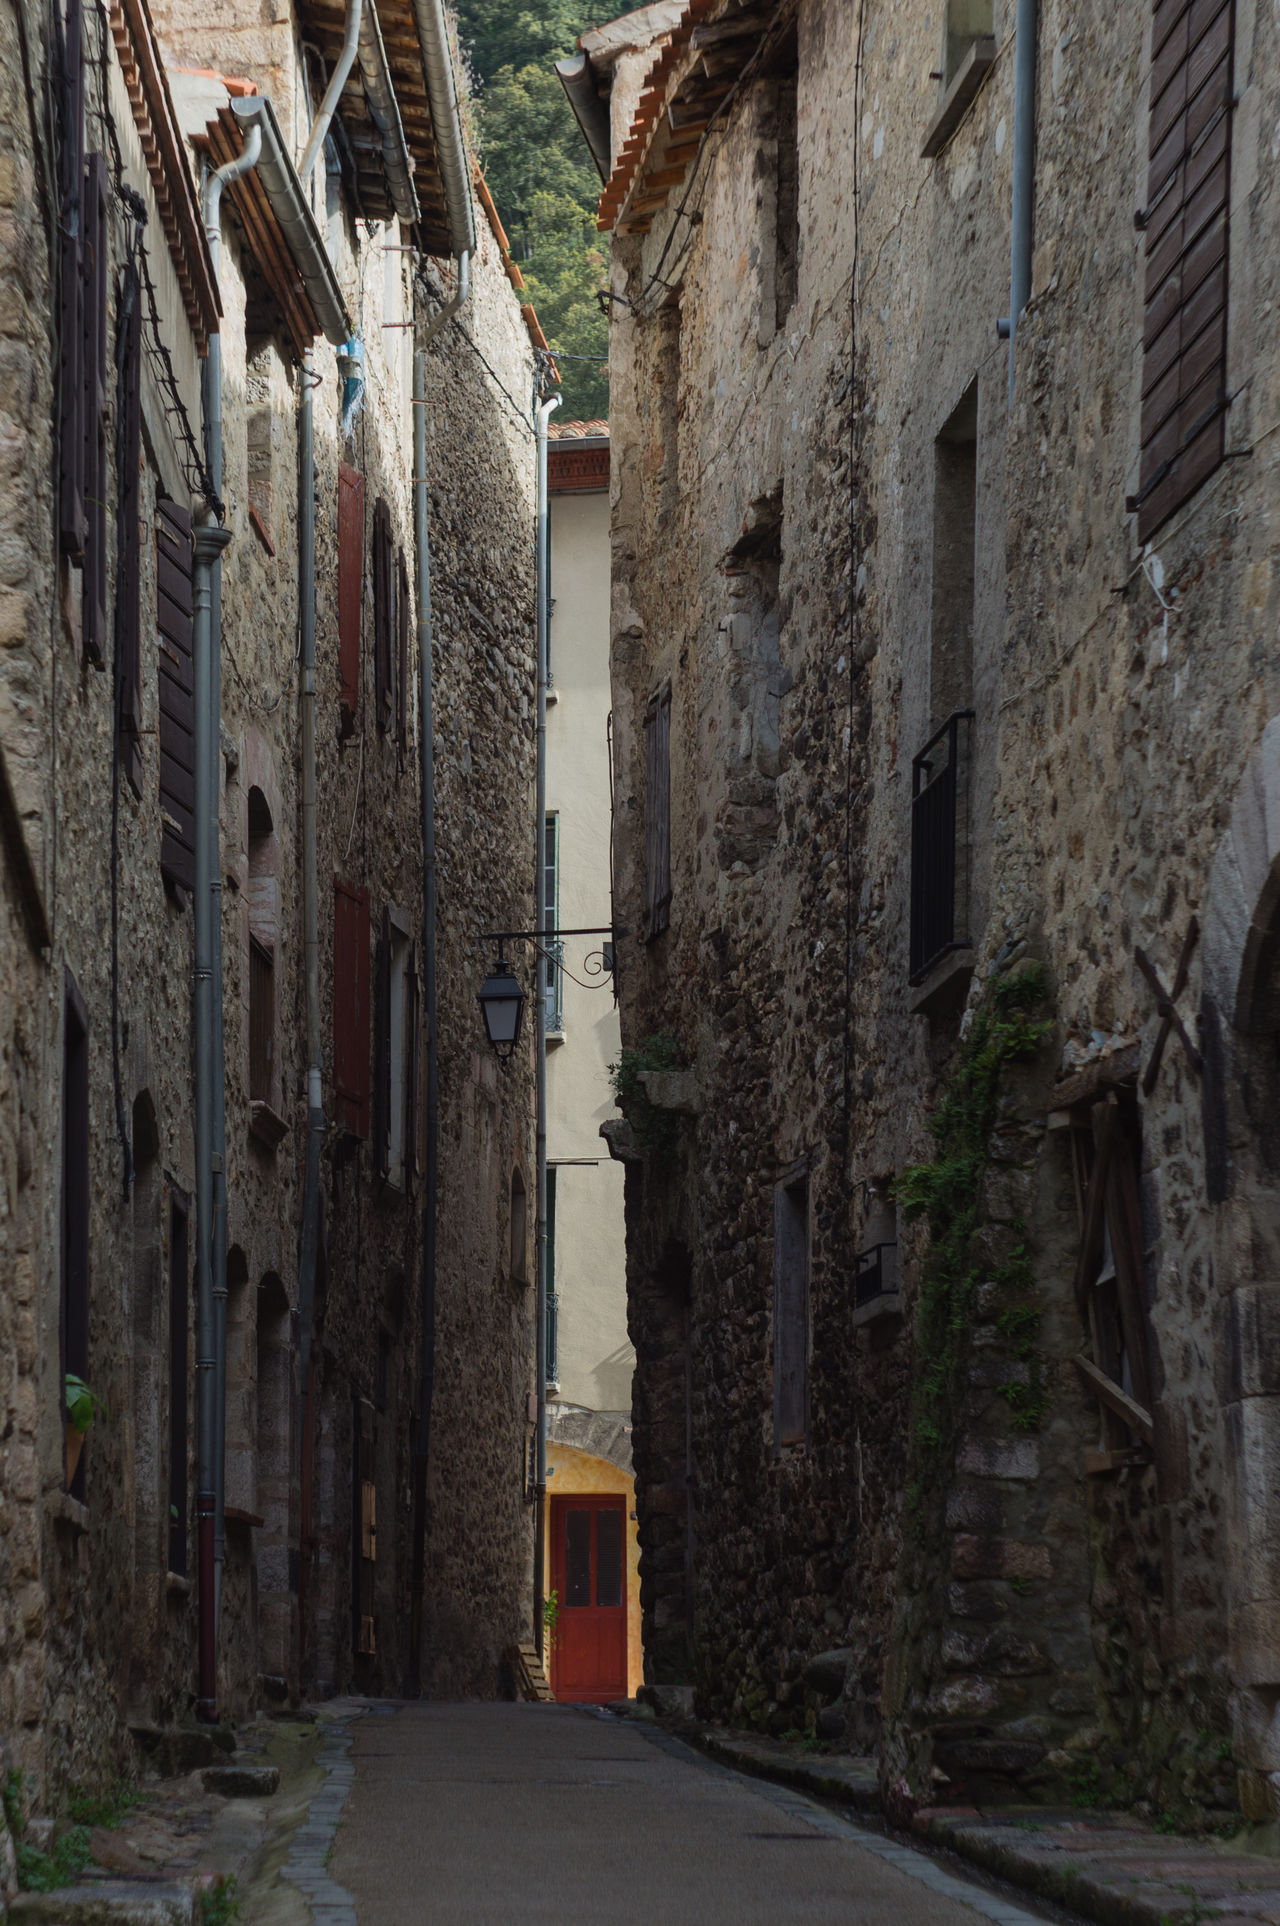 Alley Architecture Building Exterior Built Structure Day Narrow Street No People Old City Outdoors Red Dress